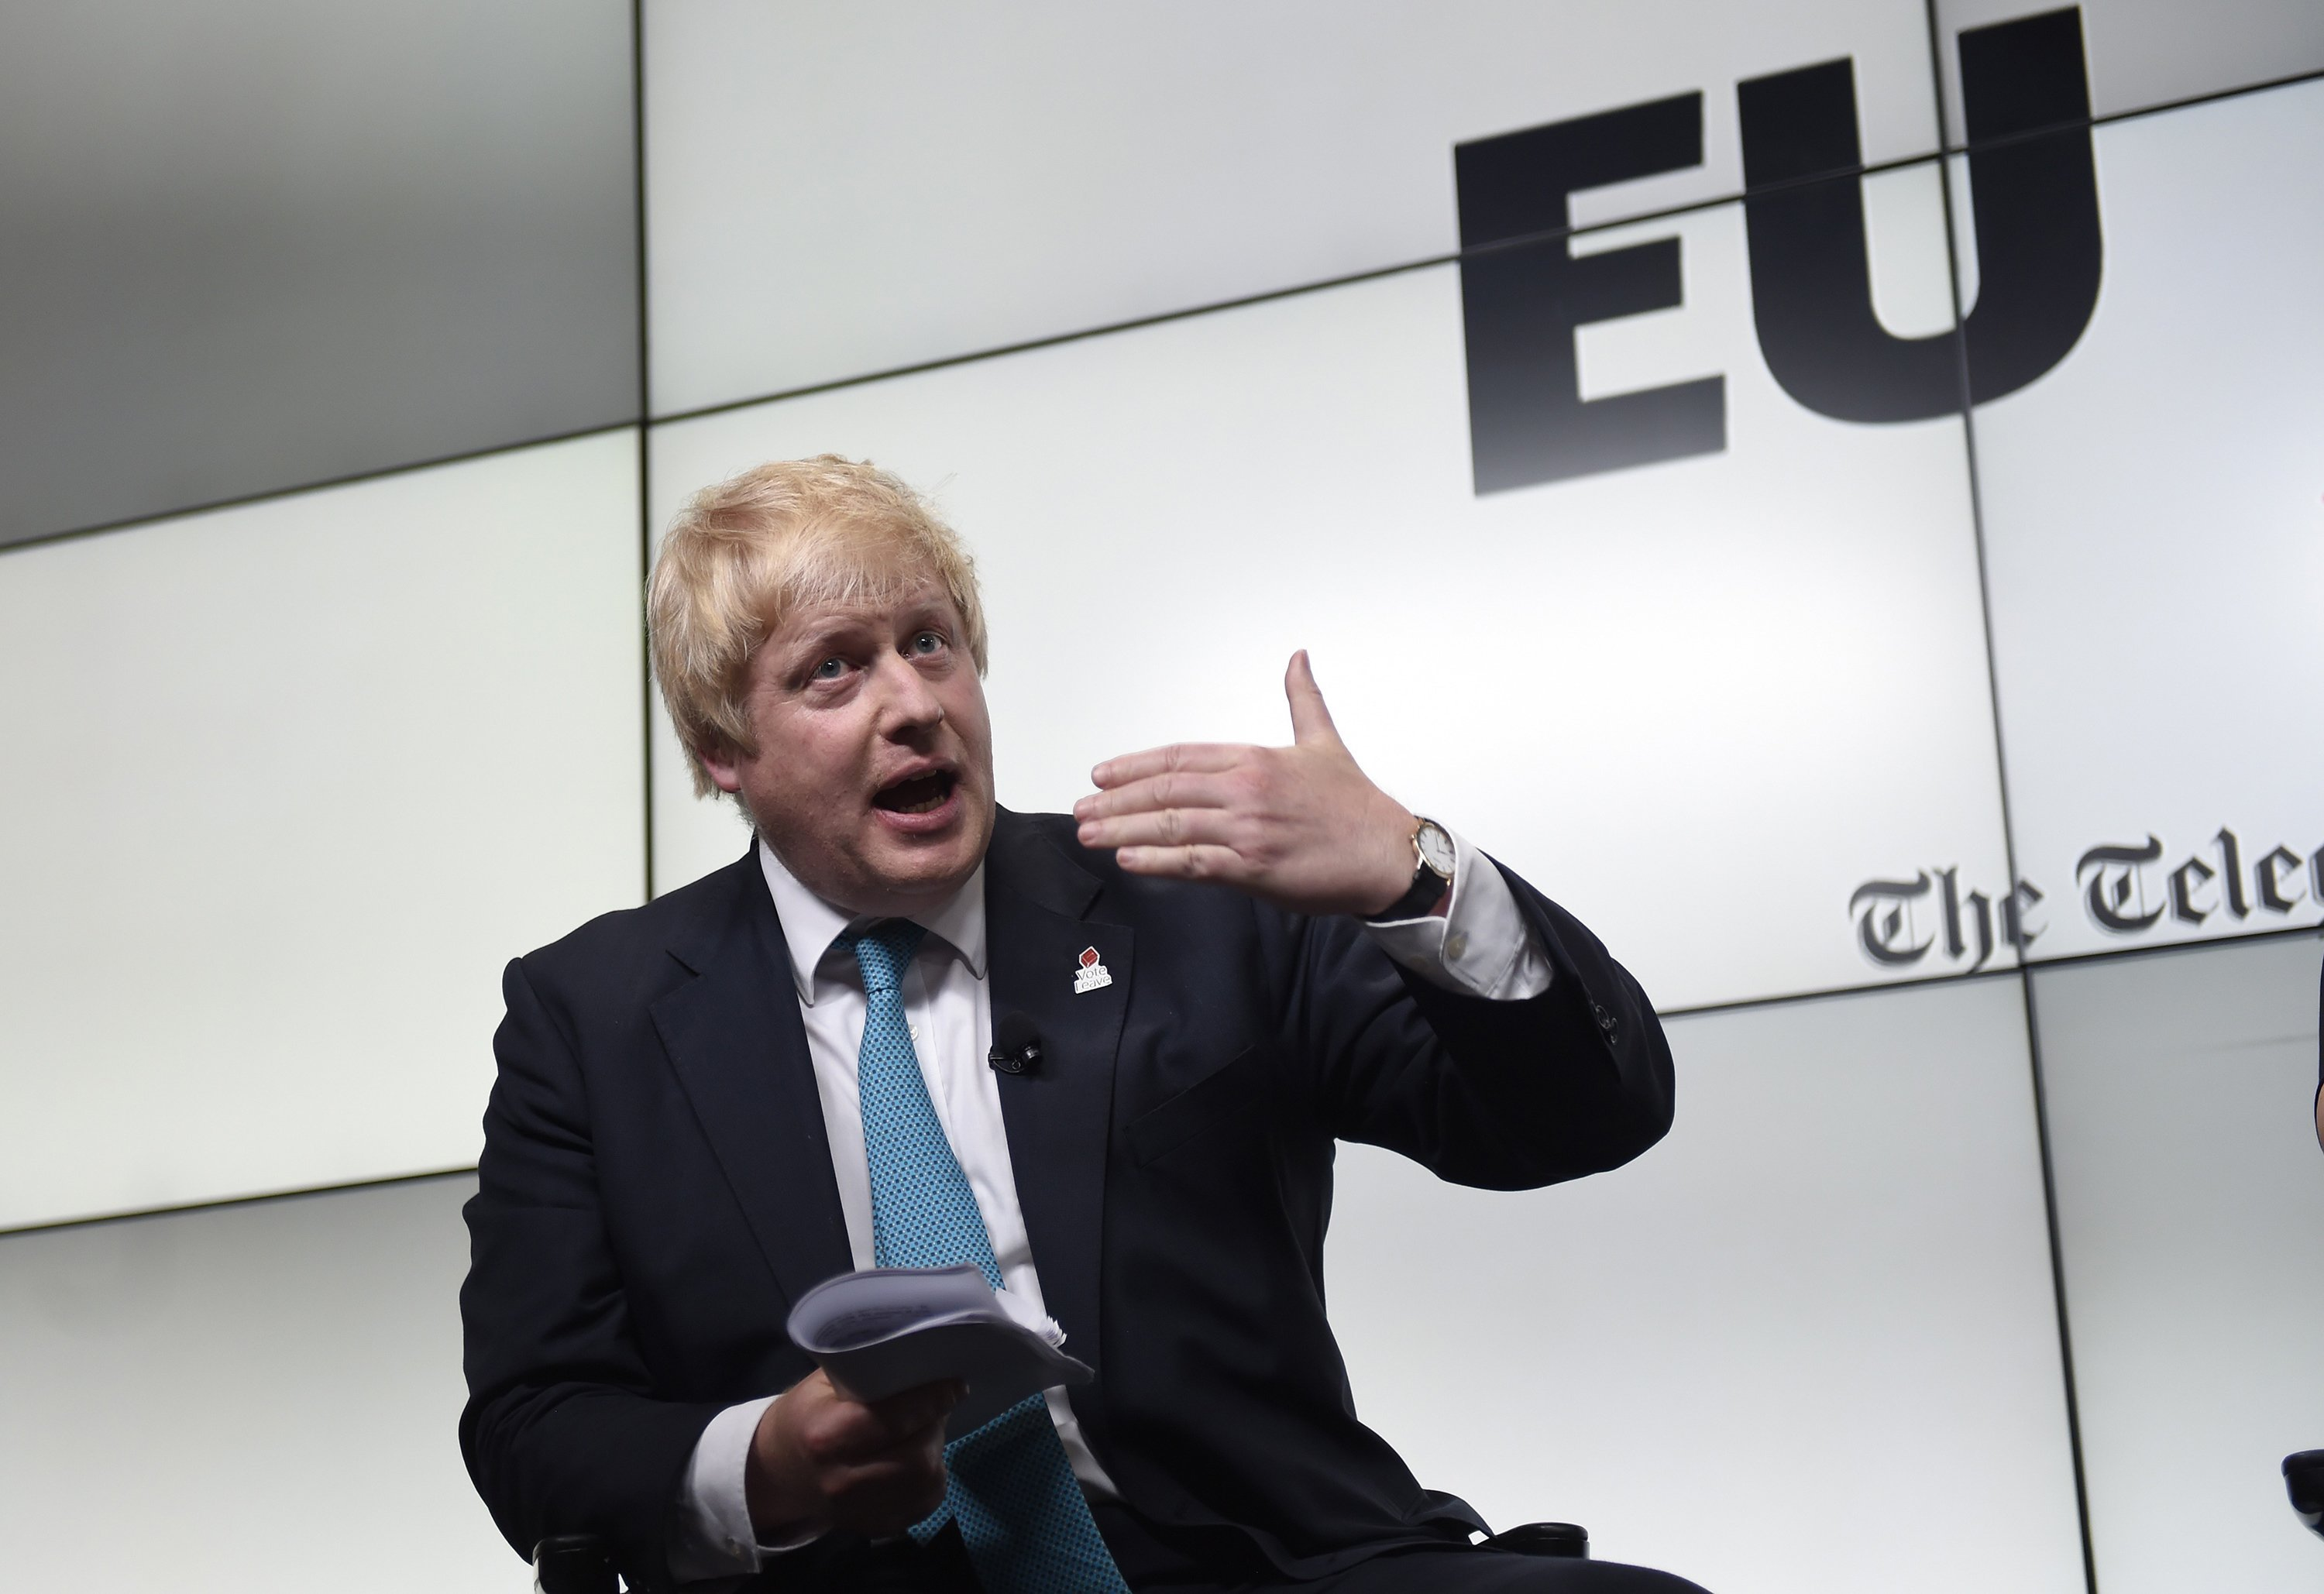 Boris Johnson doesn't have Fox News but he can always rely on the Telegraph